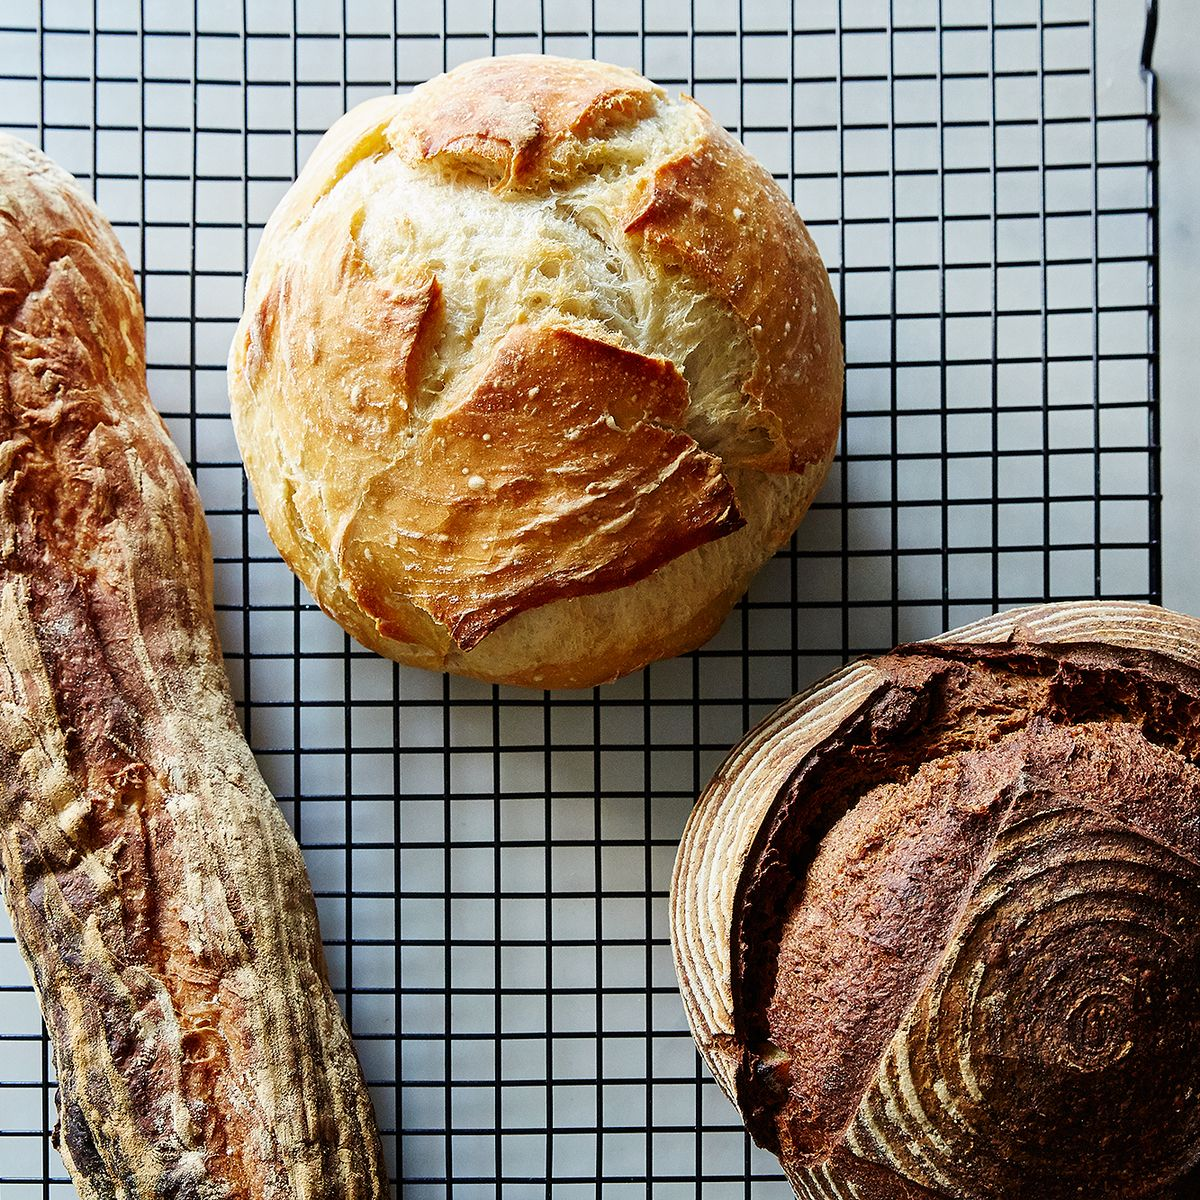 bread by james ransom for food52